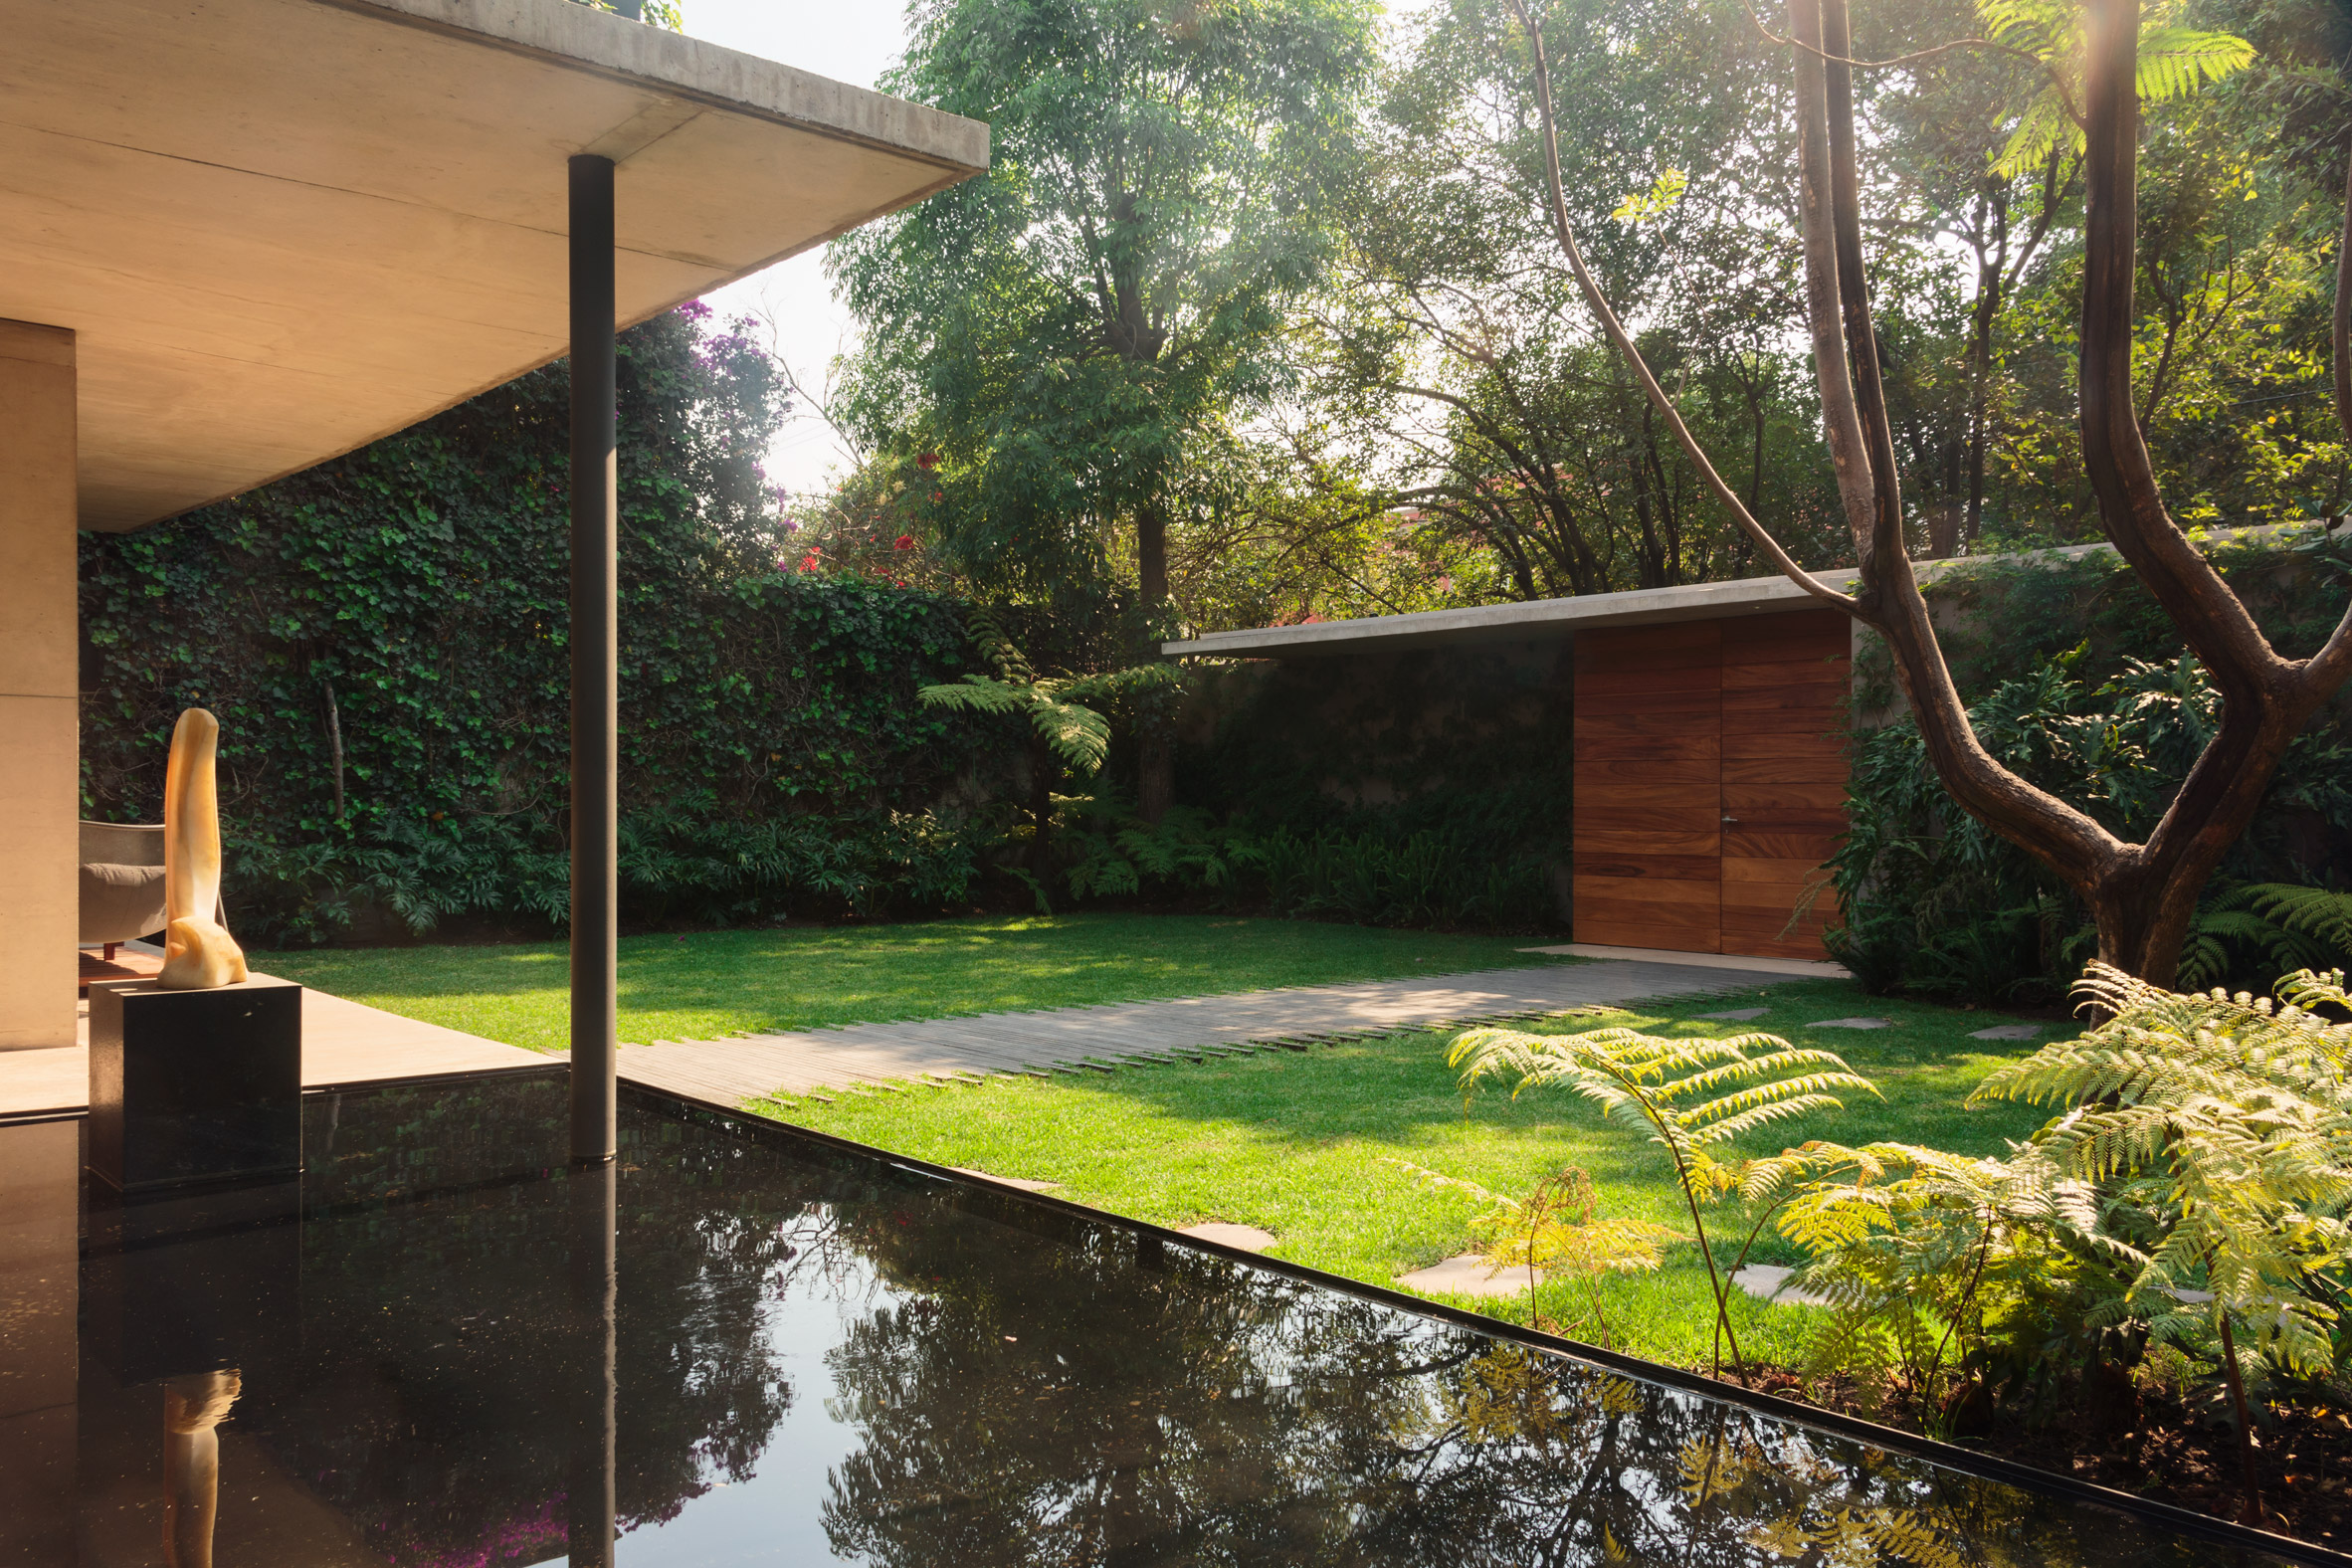 JJRR/Arquitectura sets modernist-influenced Mexico City home within verdant garden